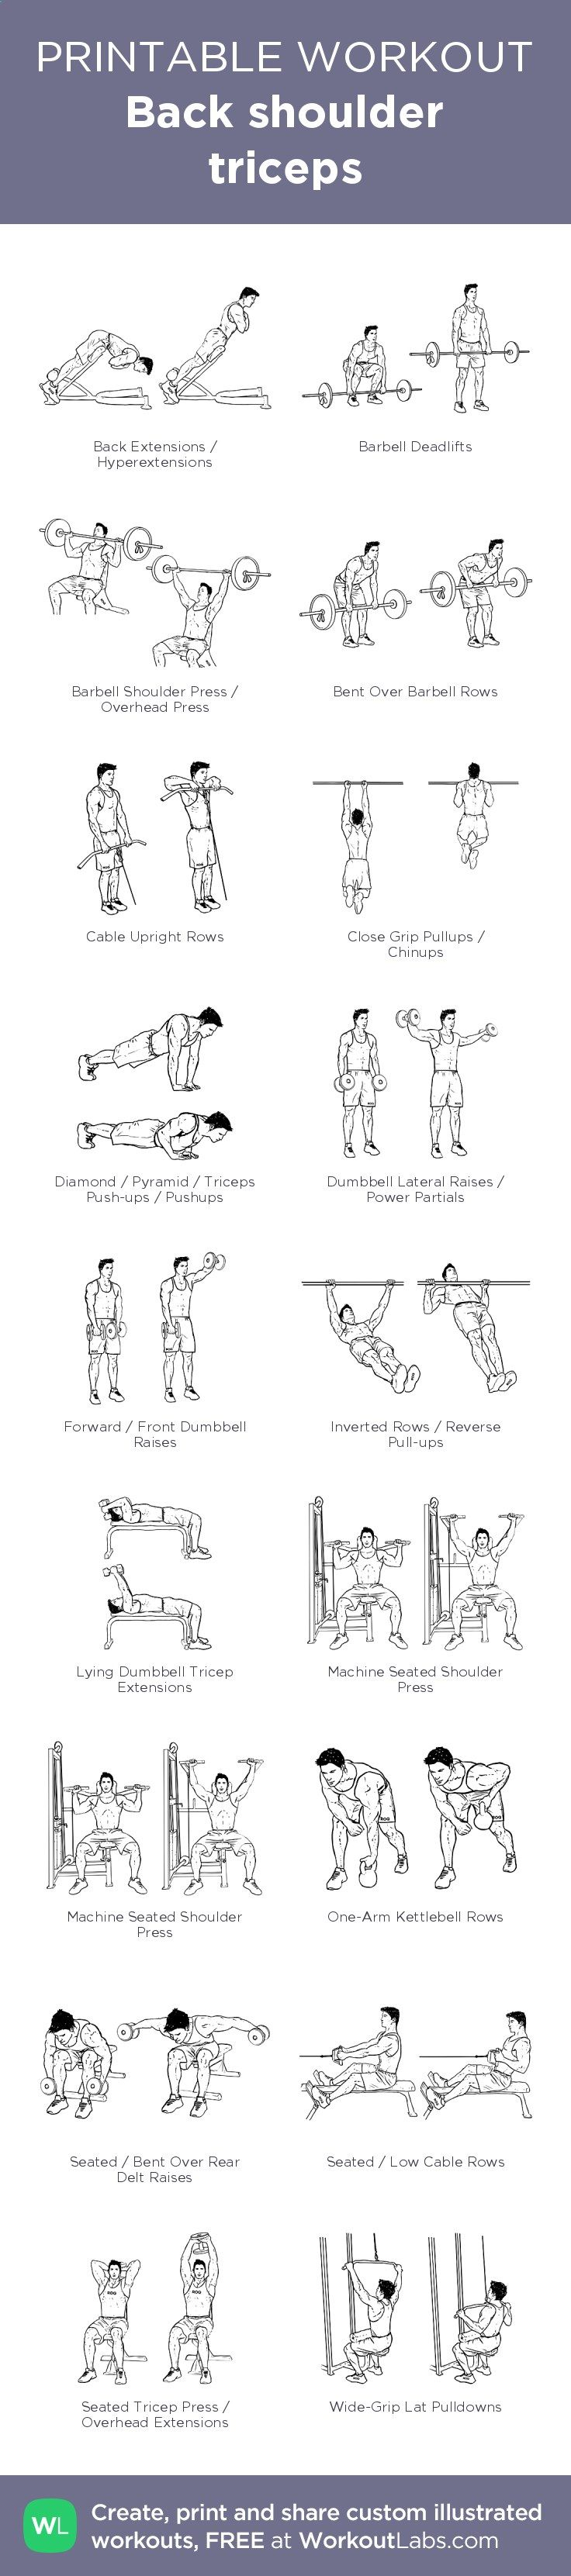 Back shoulder triceps – illustrated exercise plan created at ...